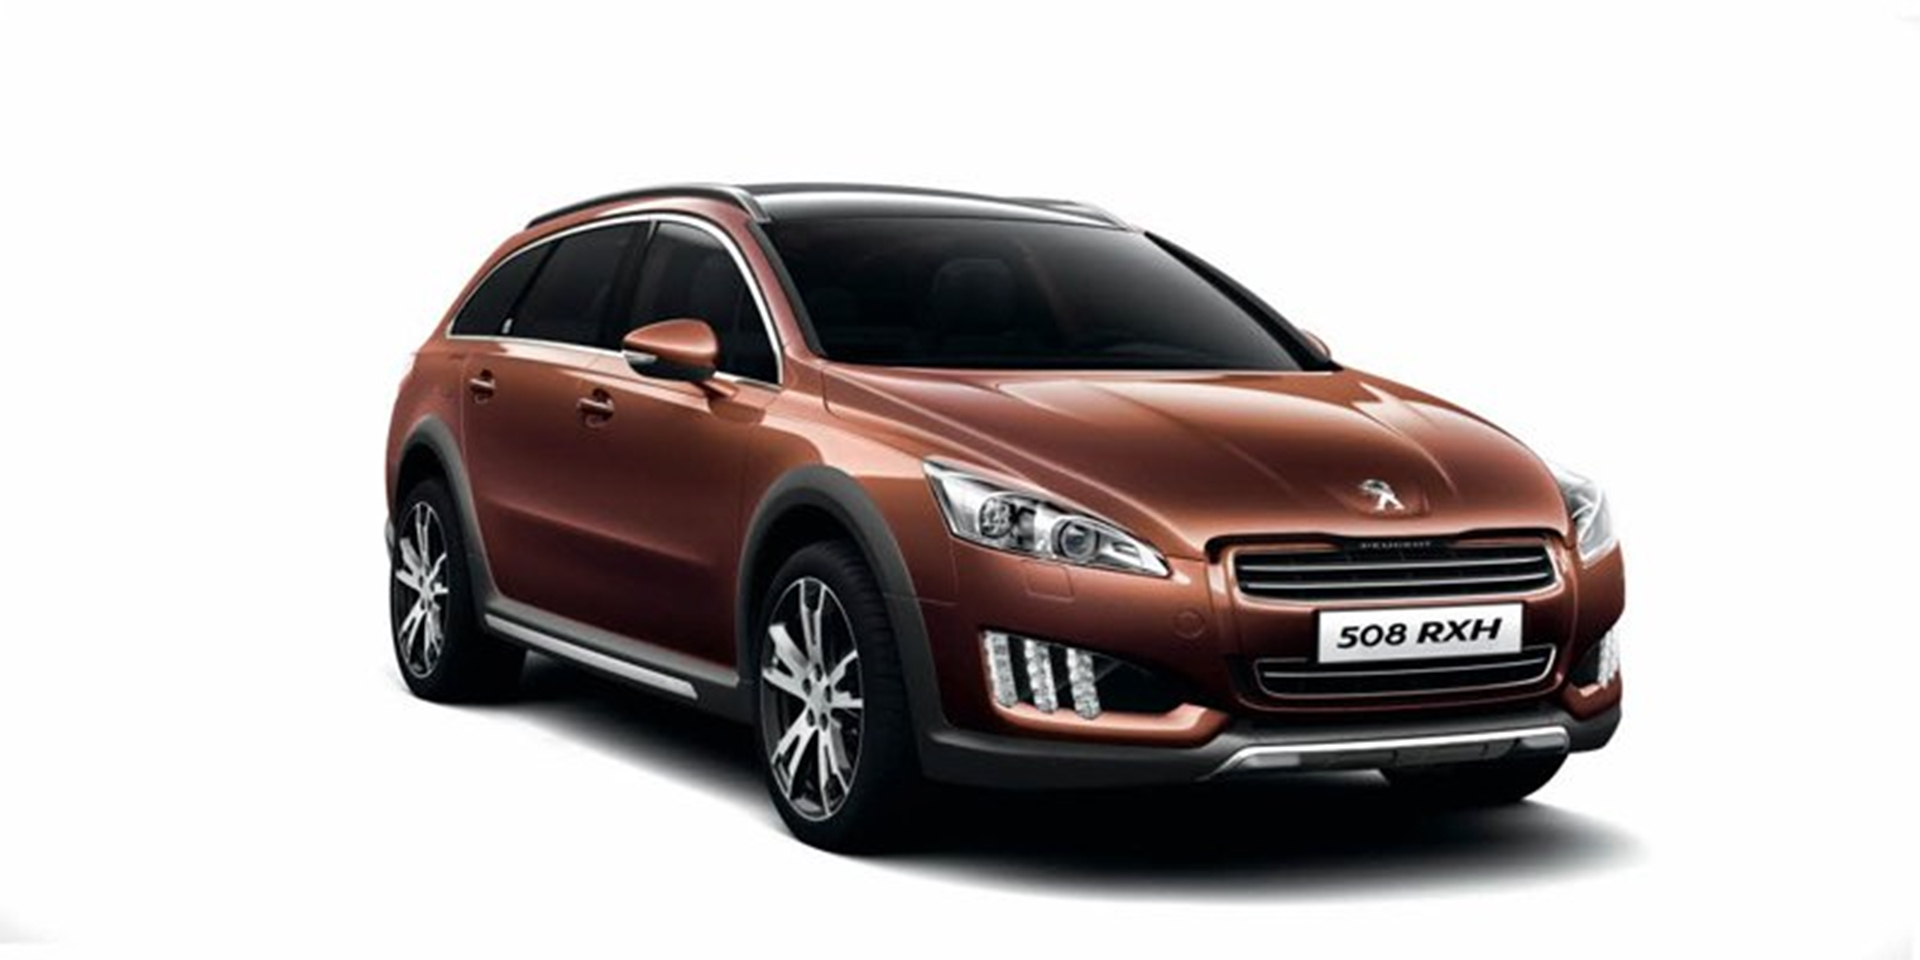 peugeot 508 rxh limited edition goes on sale. Black Bedroom Furniture Sets. Home Design Ideas